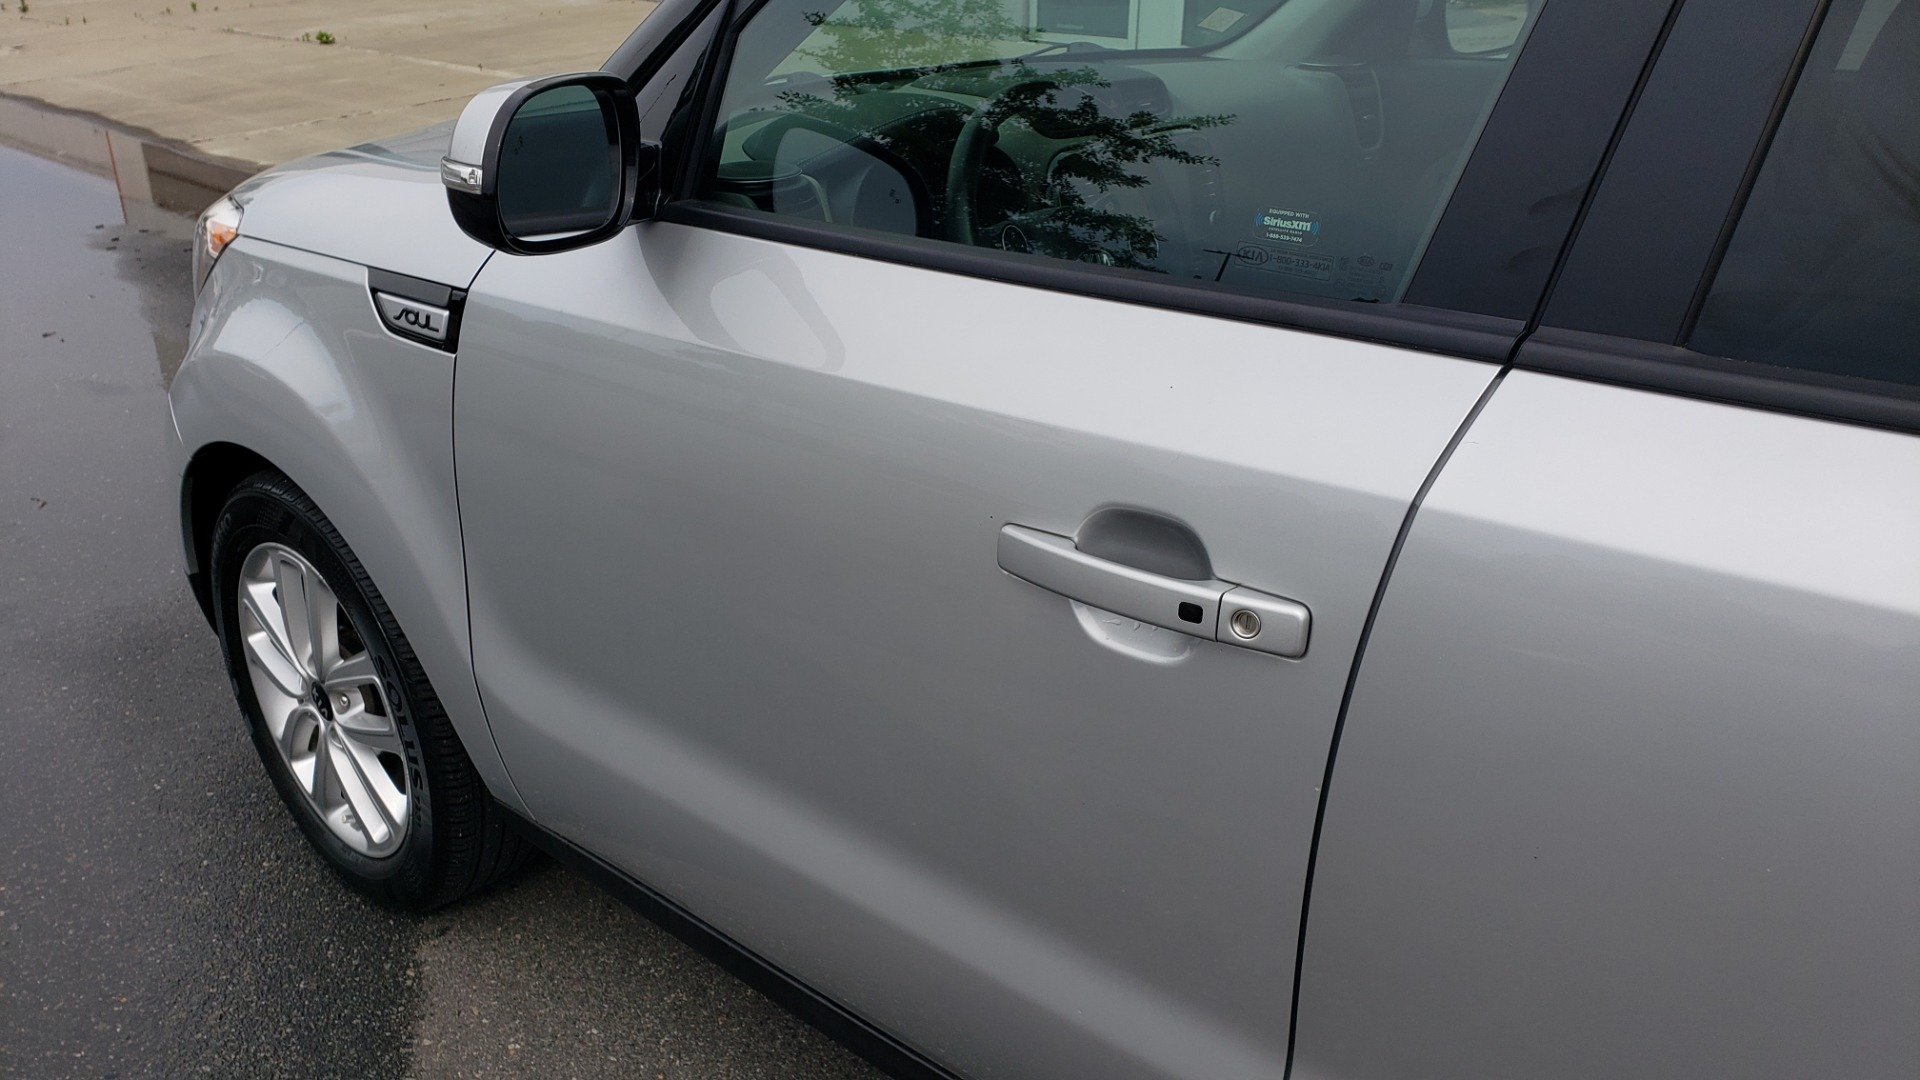 Used 2017 Kia SOUL PLUS / NAV / SUNROOF / LEATHER / HTD STS / REARVIEW for sale $16,995 at Formula Imports in Charlotte NC 28227 8